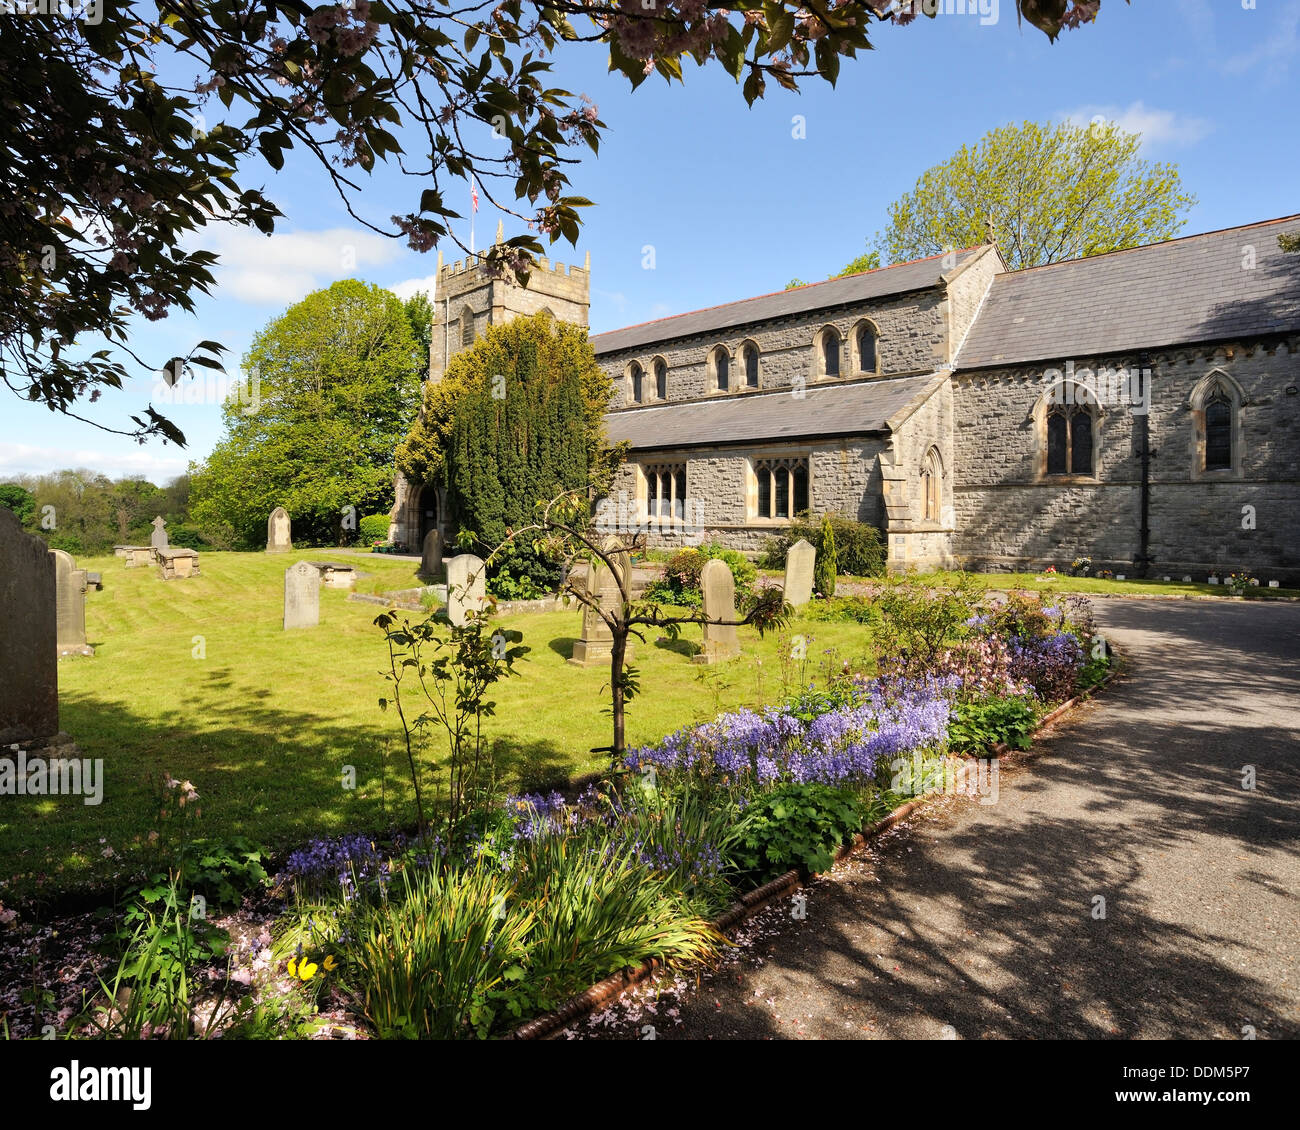 Bluebells lining the entrance to St Mary's Church, Ingleton, Yorkshire Dales National Park, England - Stock Image